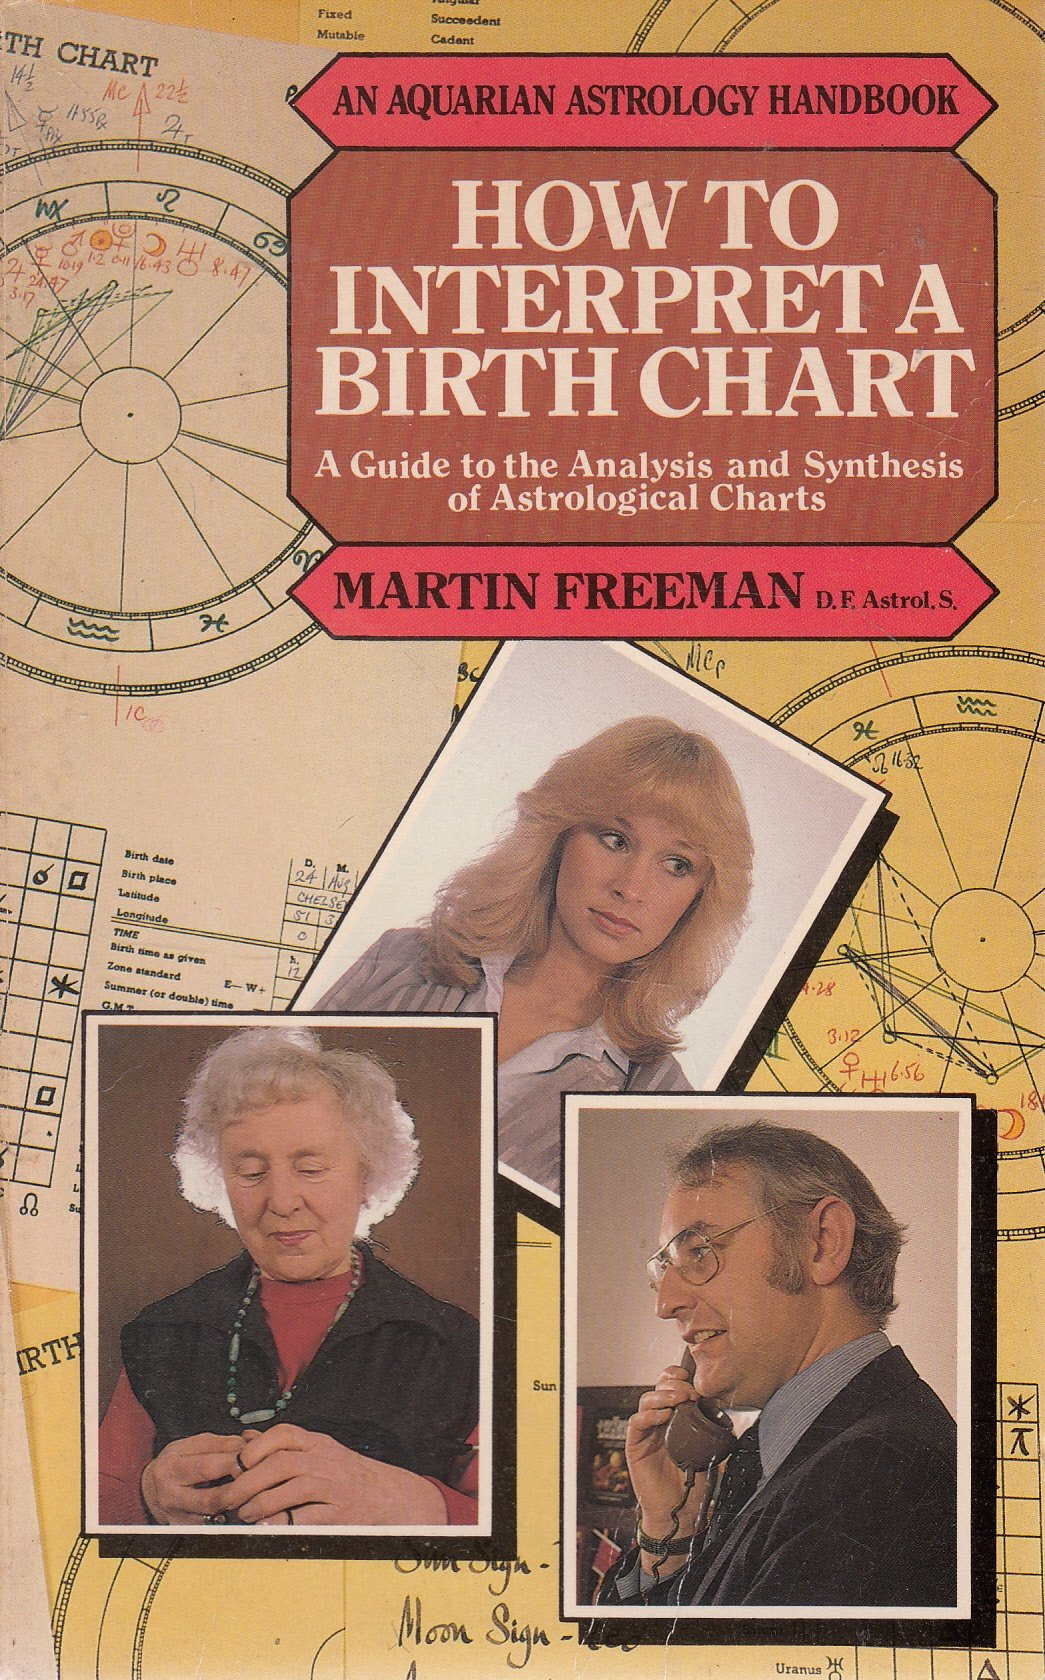 How To Interpret A Birth Chart Guide The Analysis And Synthesis Of Astrological Charts Astrology Handbooks Amazonde Martin Freeman Fremdsprachige